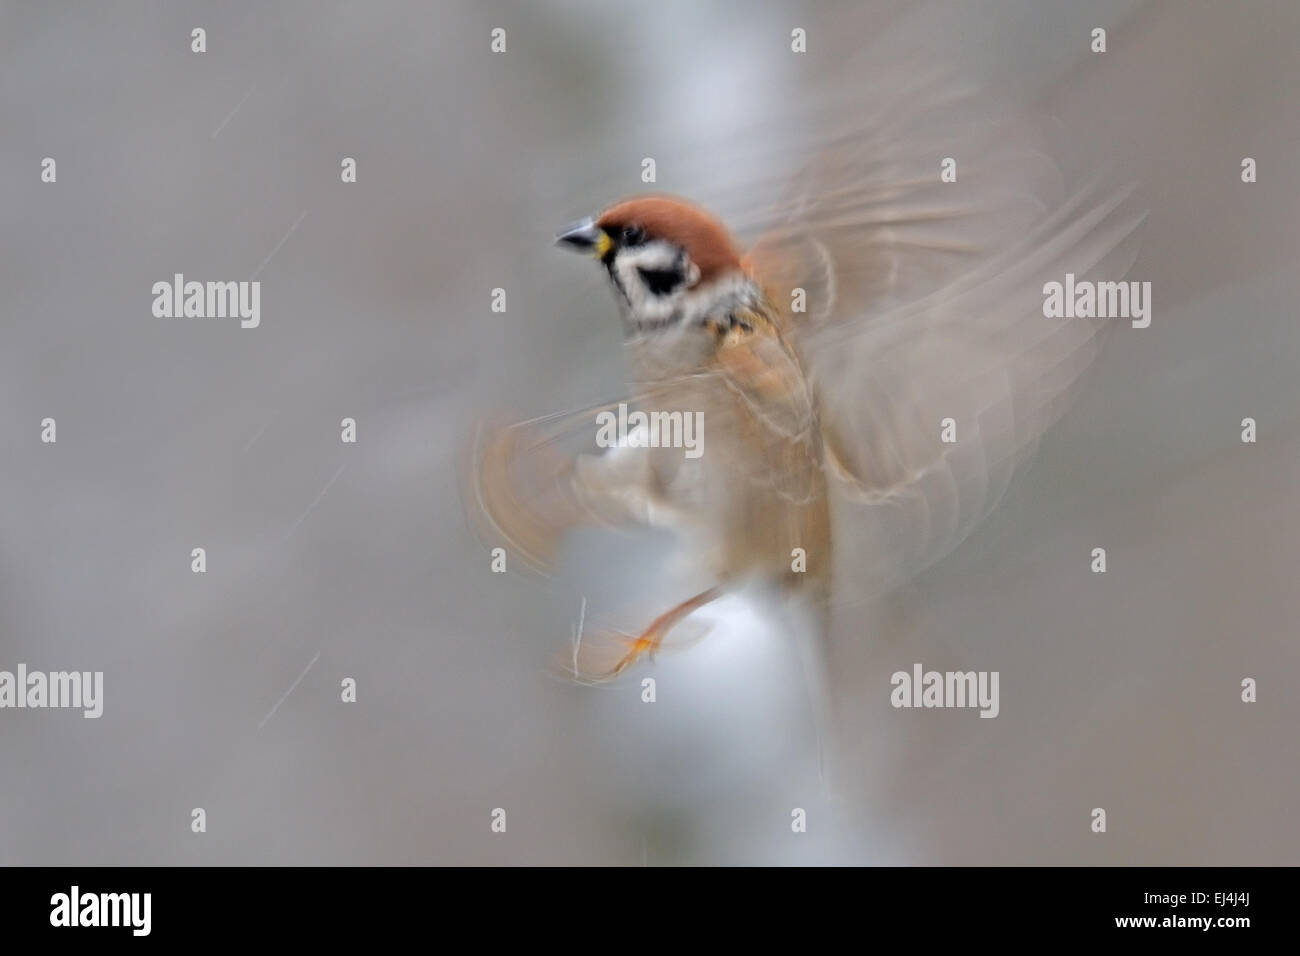 Flying blurred Tree Sparrow - Stock Image